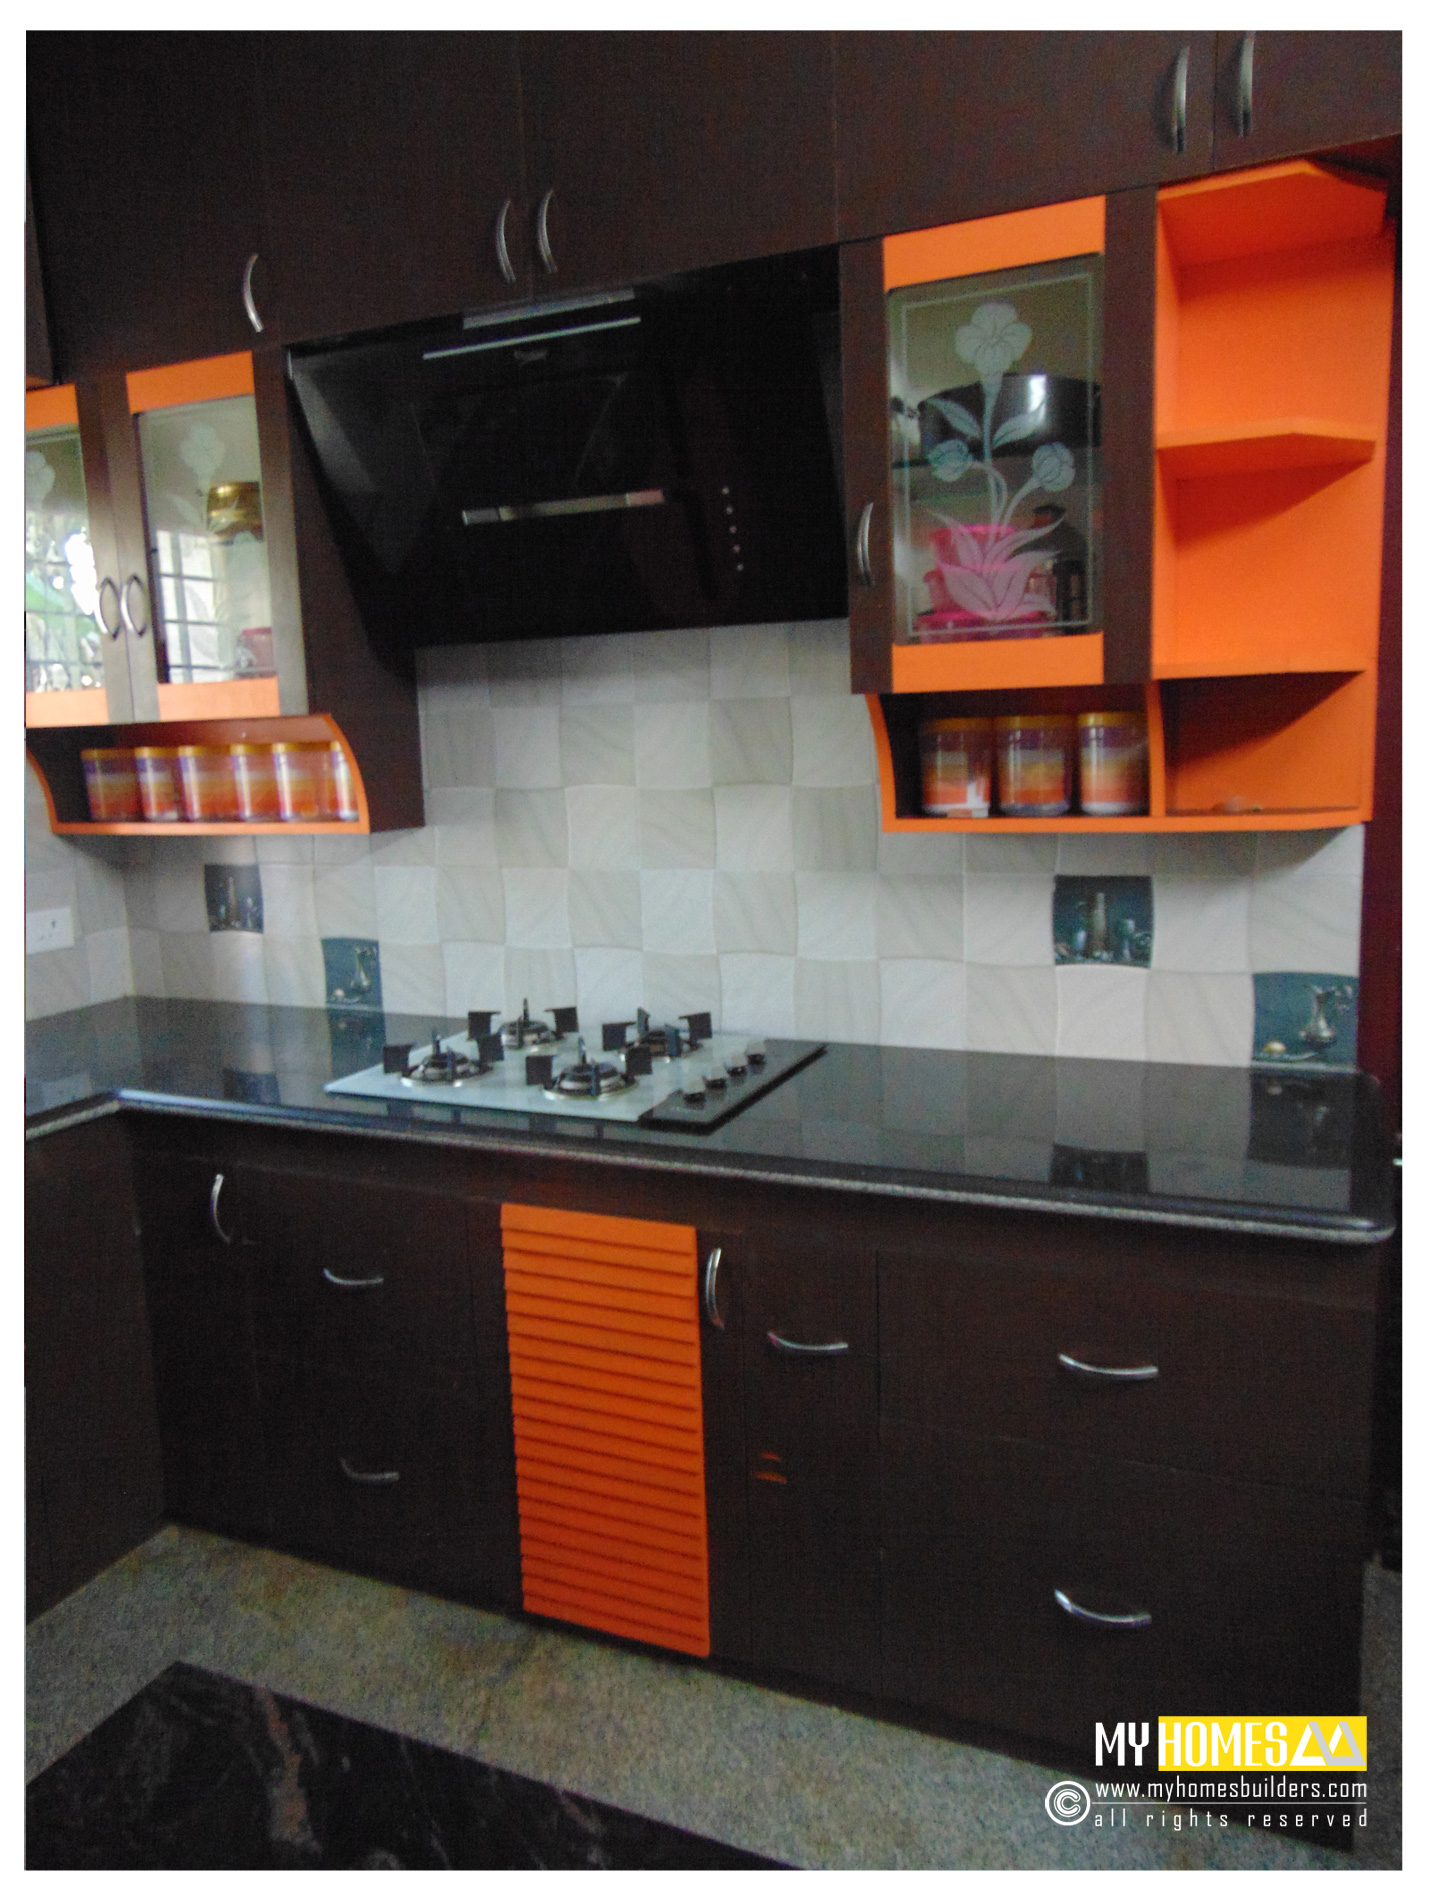 Kerala kitchen designs idea in modular style for house in for Modern kitchen designs in kerala